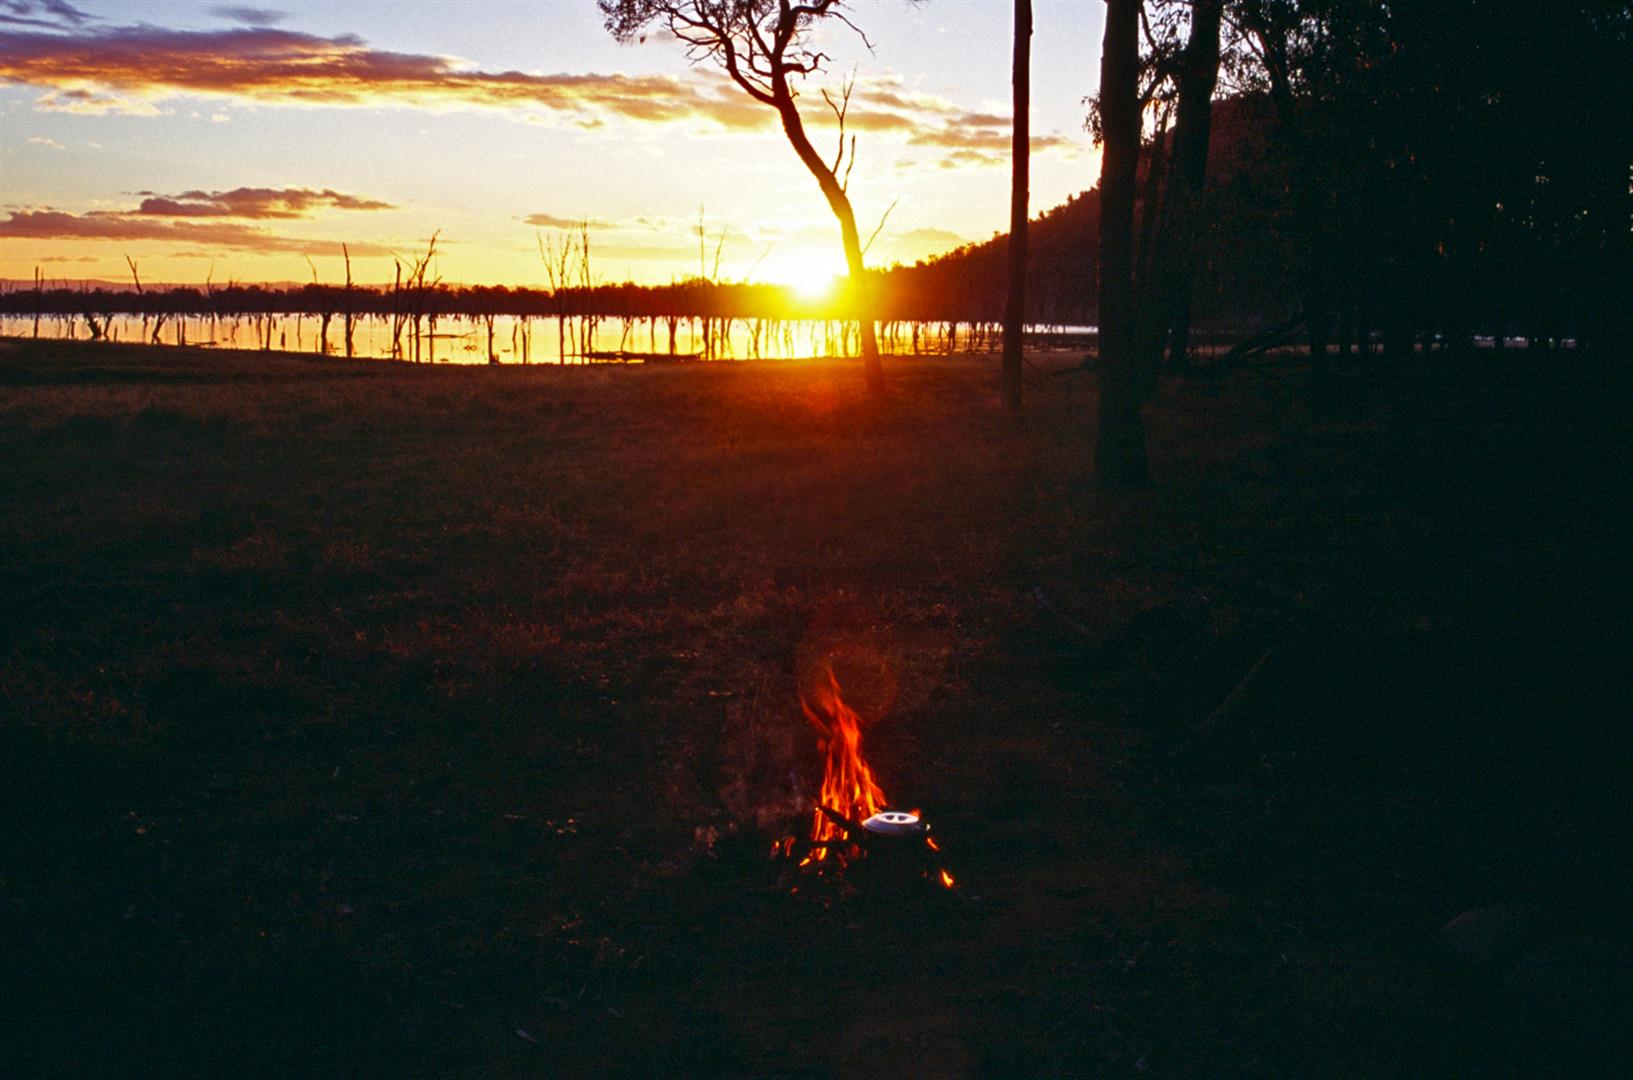 Boiling the billy on sunset, lake Nuga Nuga. Photo courtesy Bernice Sigley.